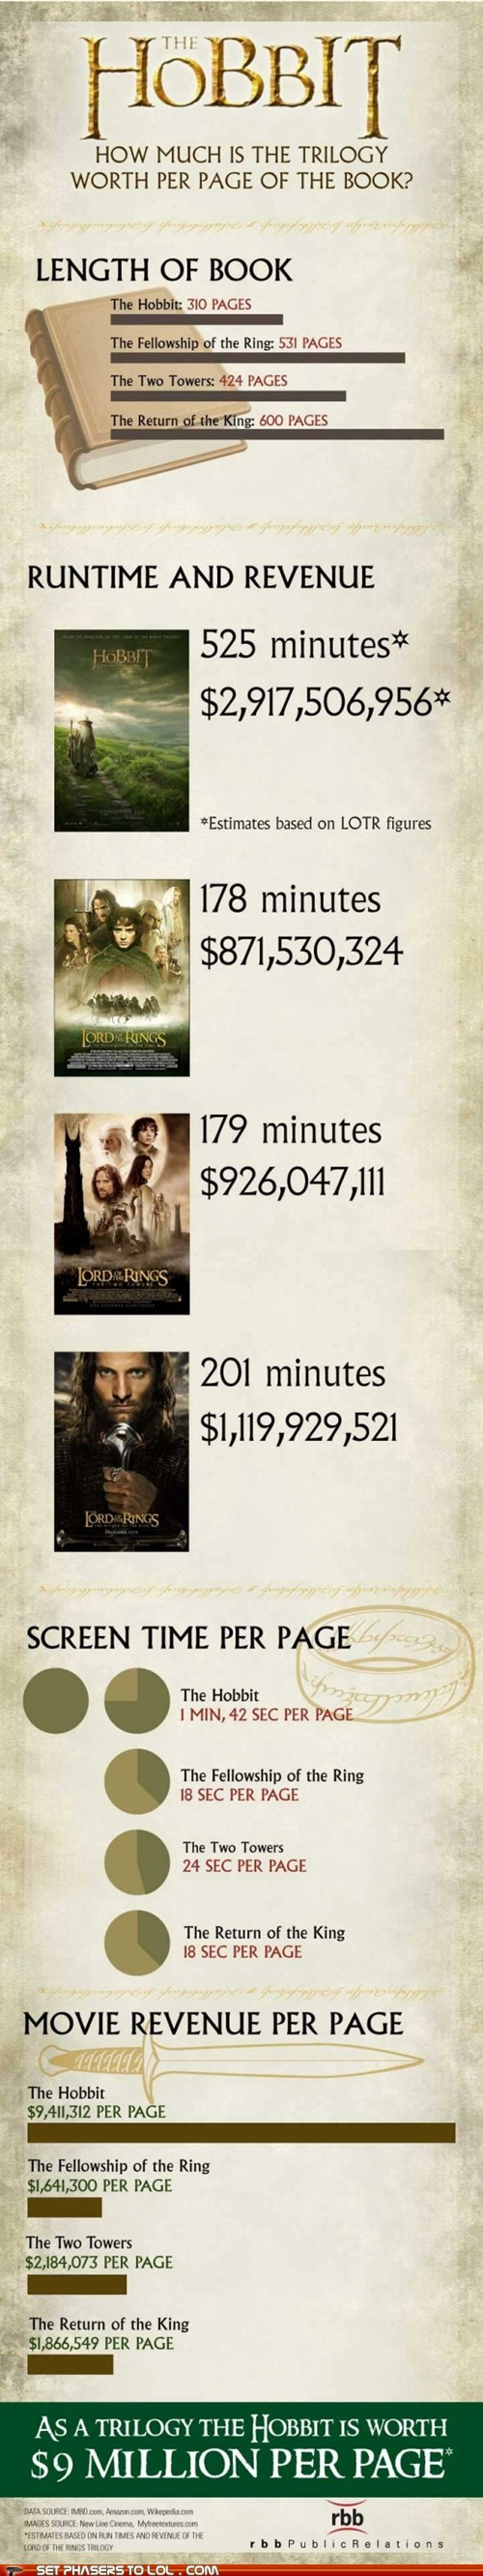 box office infographic Lord of The Ring Lord of the Rings money movies peter jackson worth - 6478299136